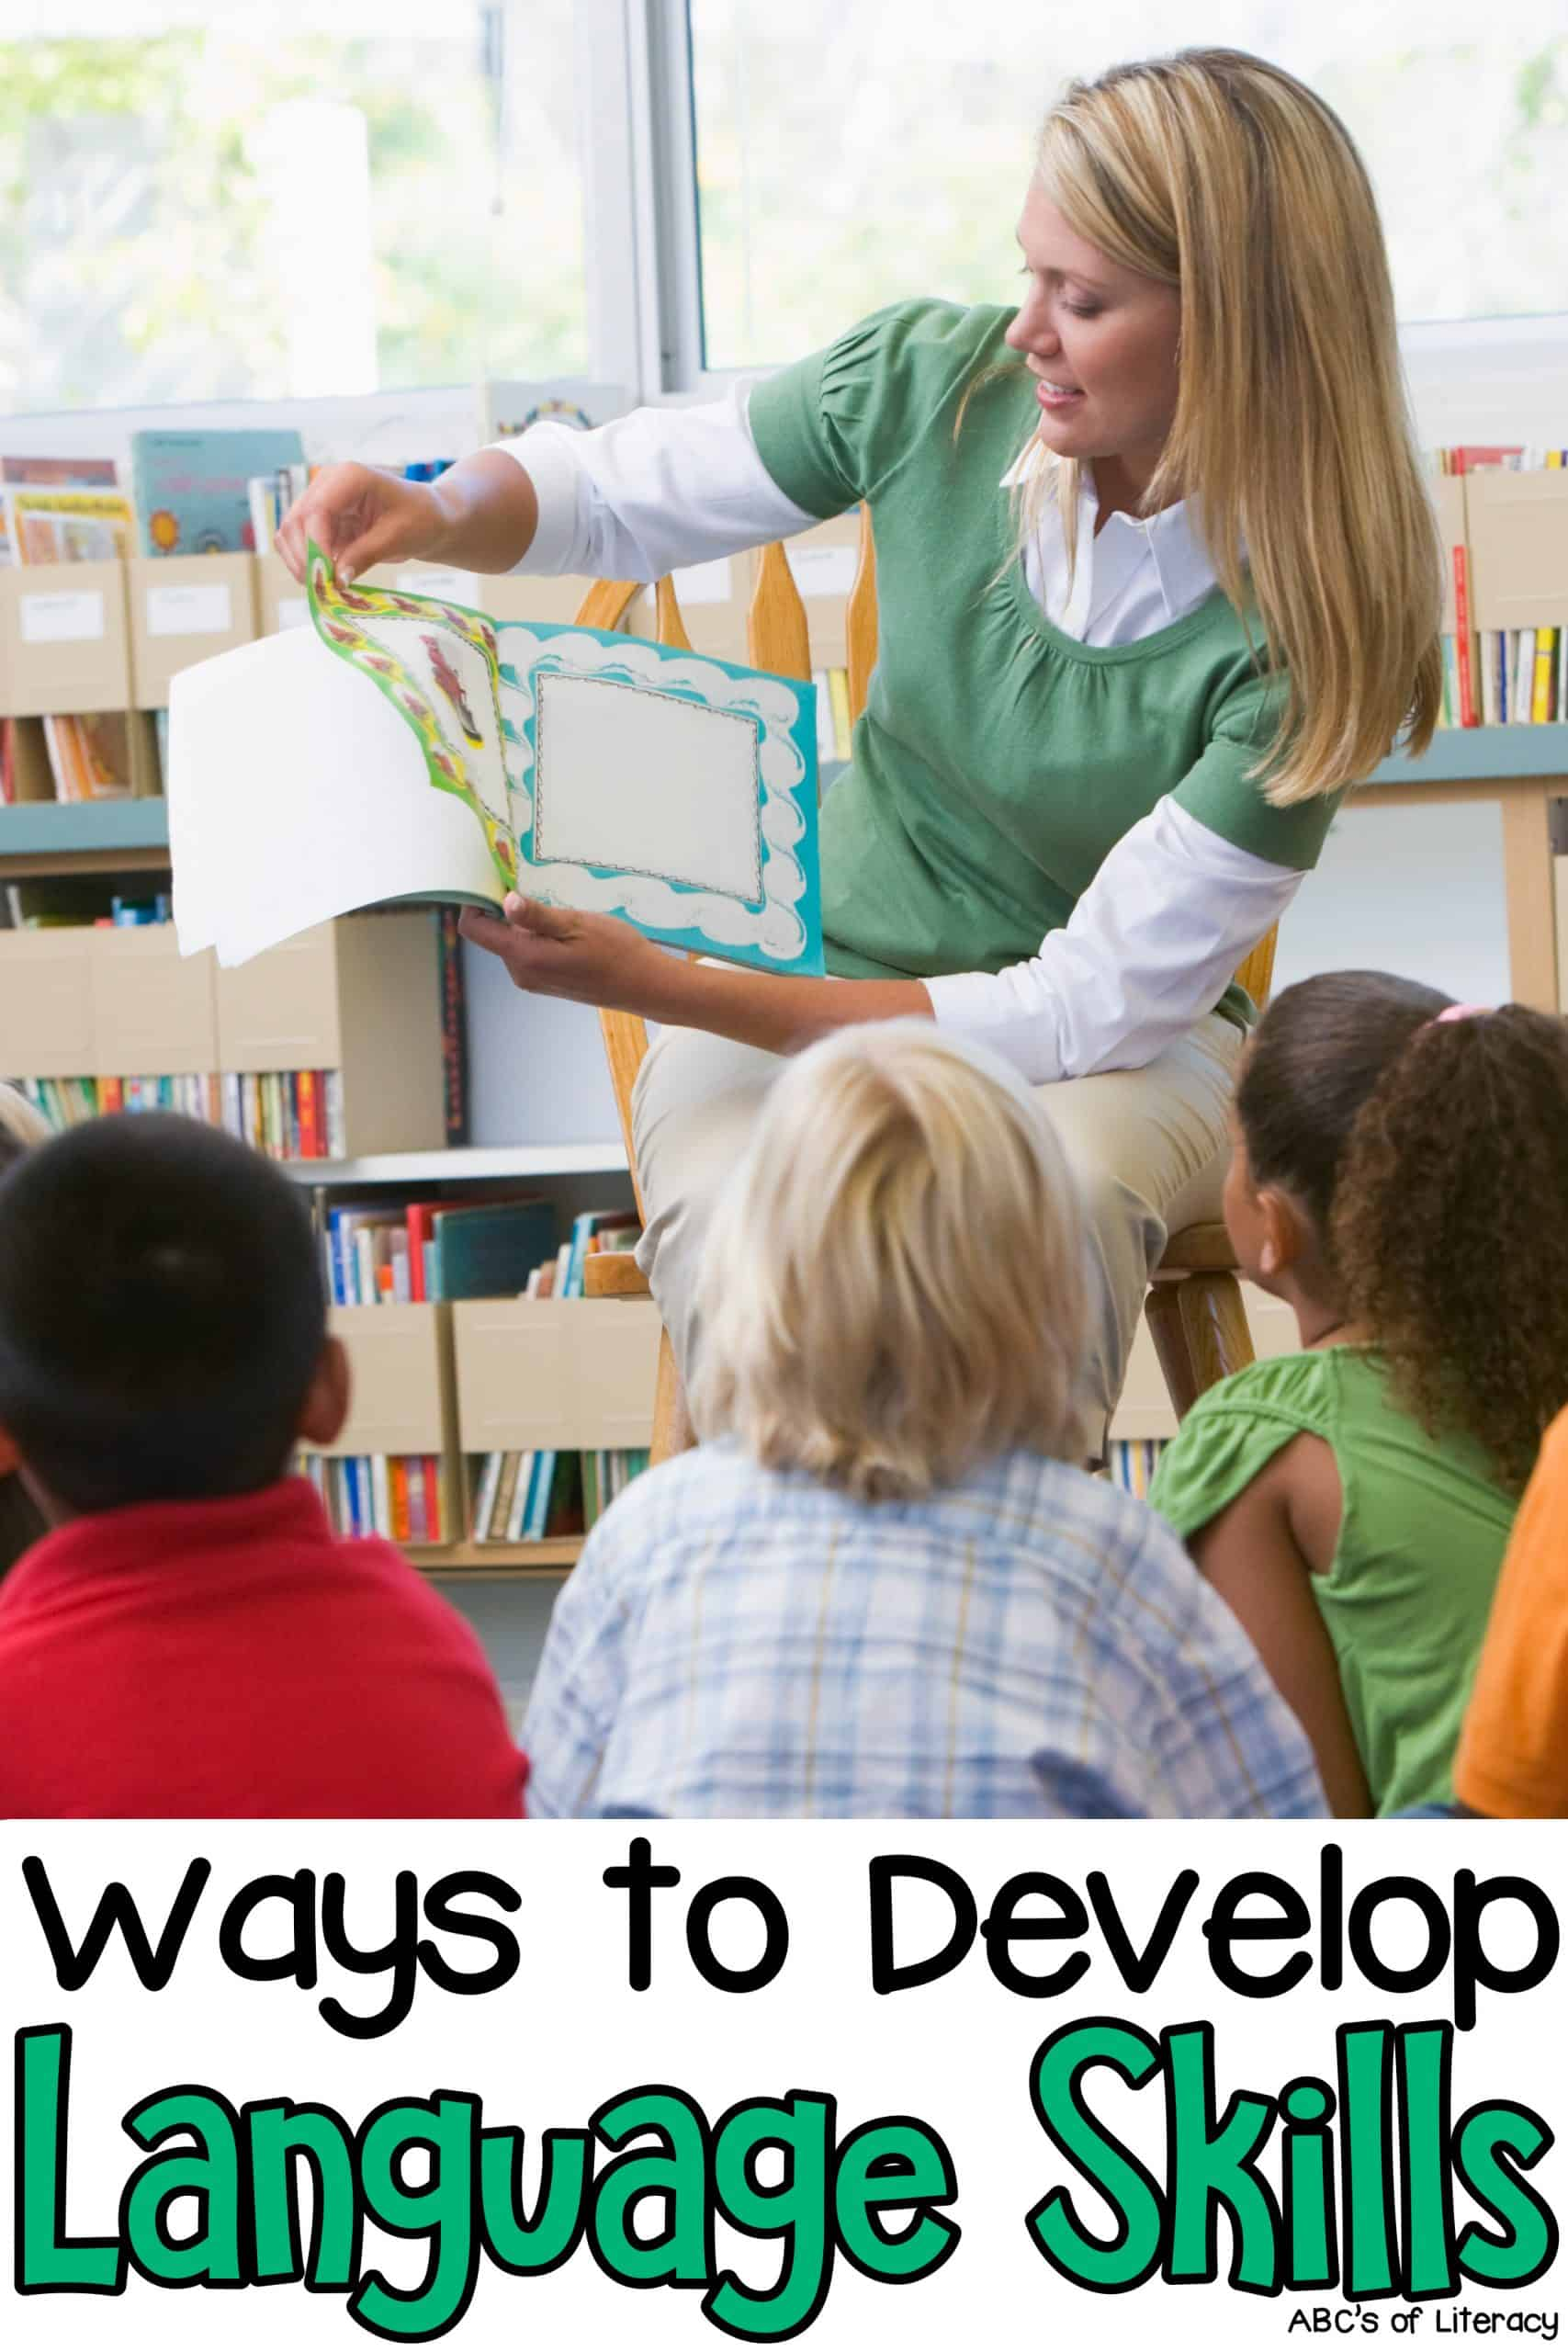 Ways to Develop Language Skills